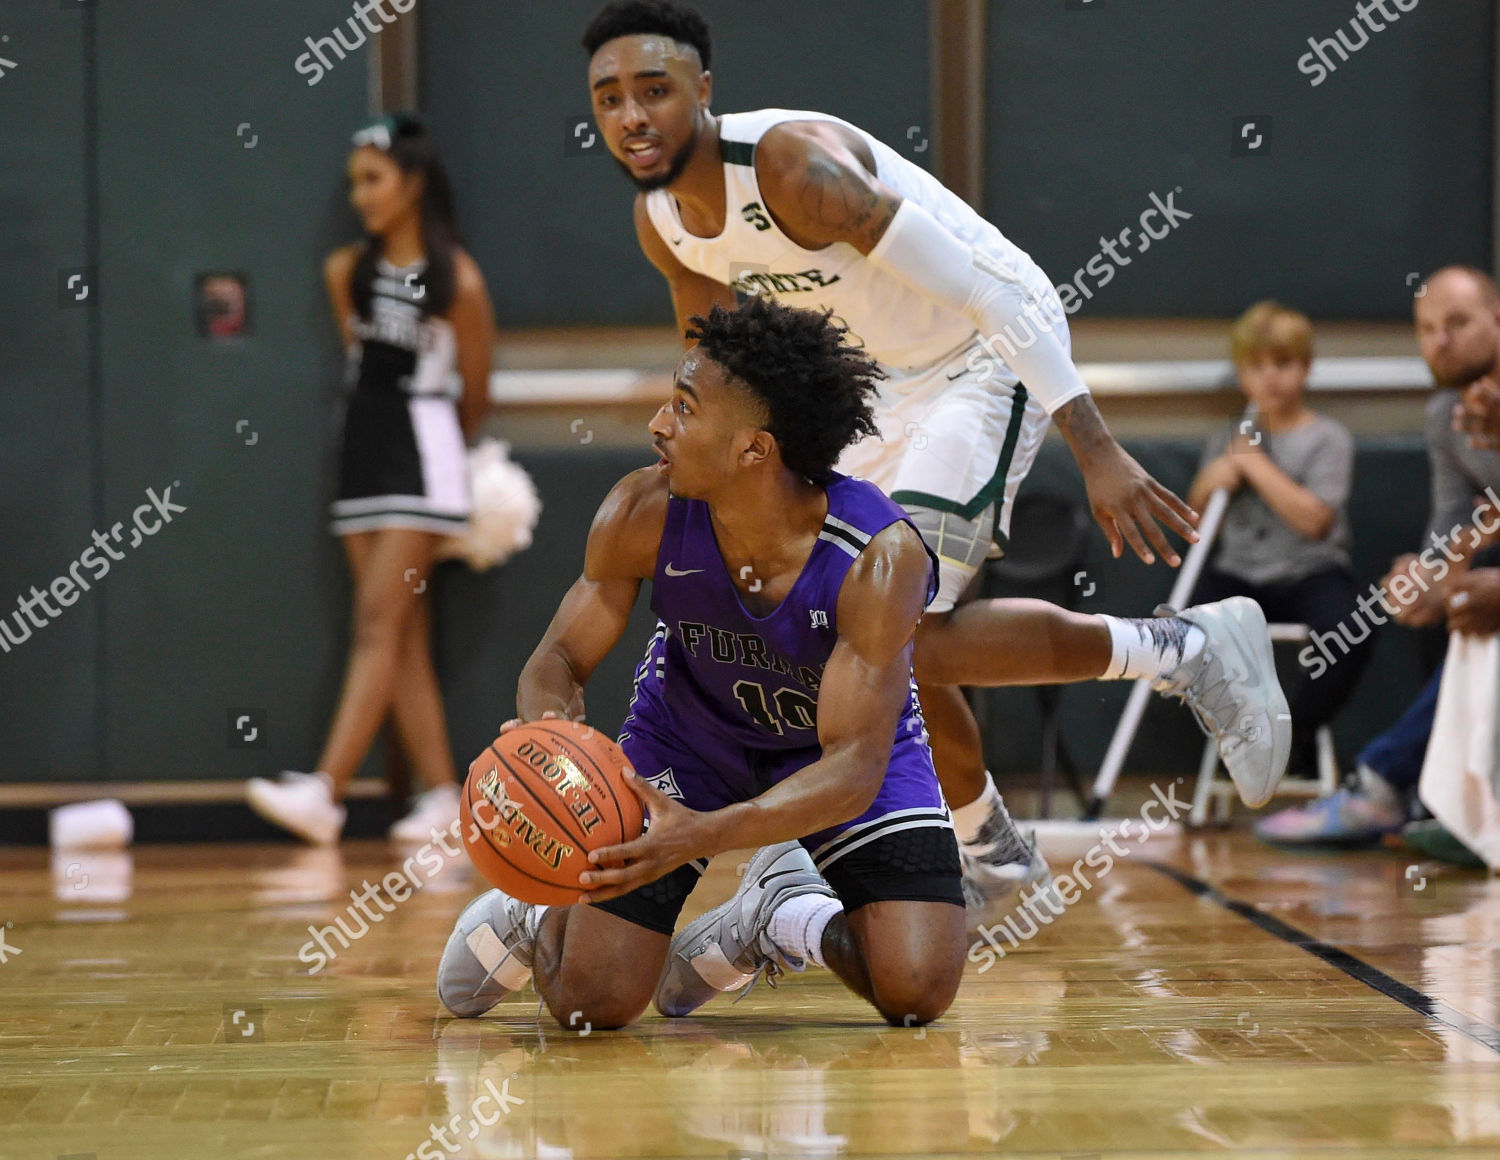 7a65f45405d5 Furman SC Upstate Basketball, Spartanburg, USA Stock Image by Richard Shiro  for editorial use, Dec 8, 2018